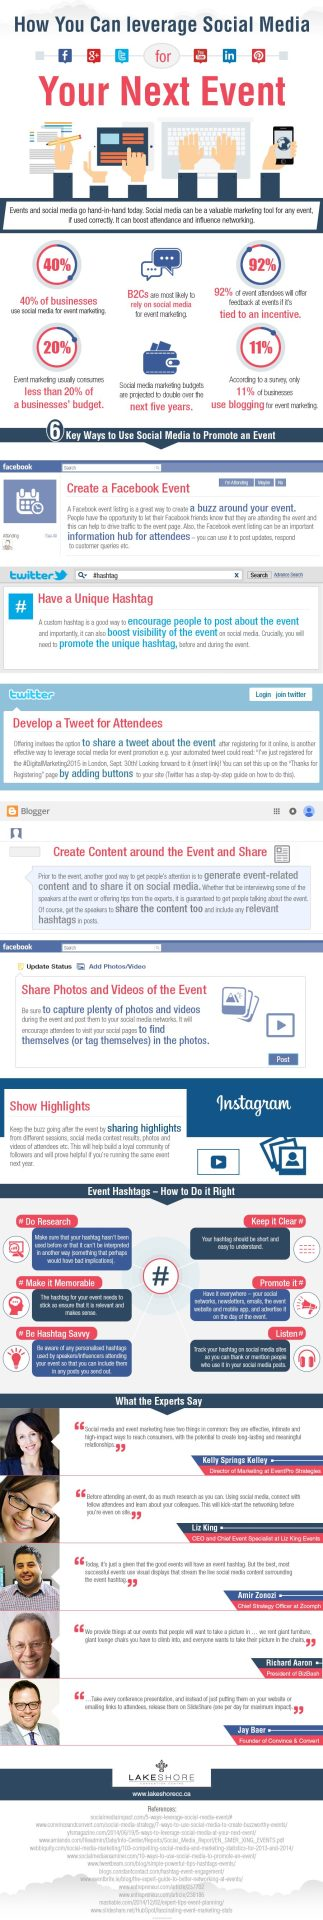 leverage social media for events